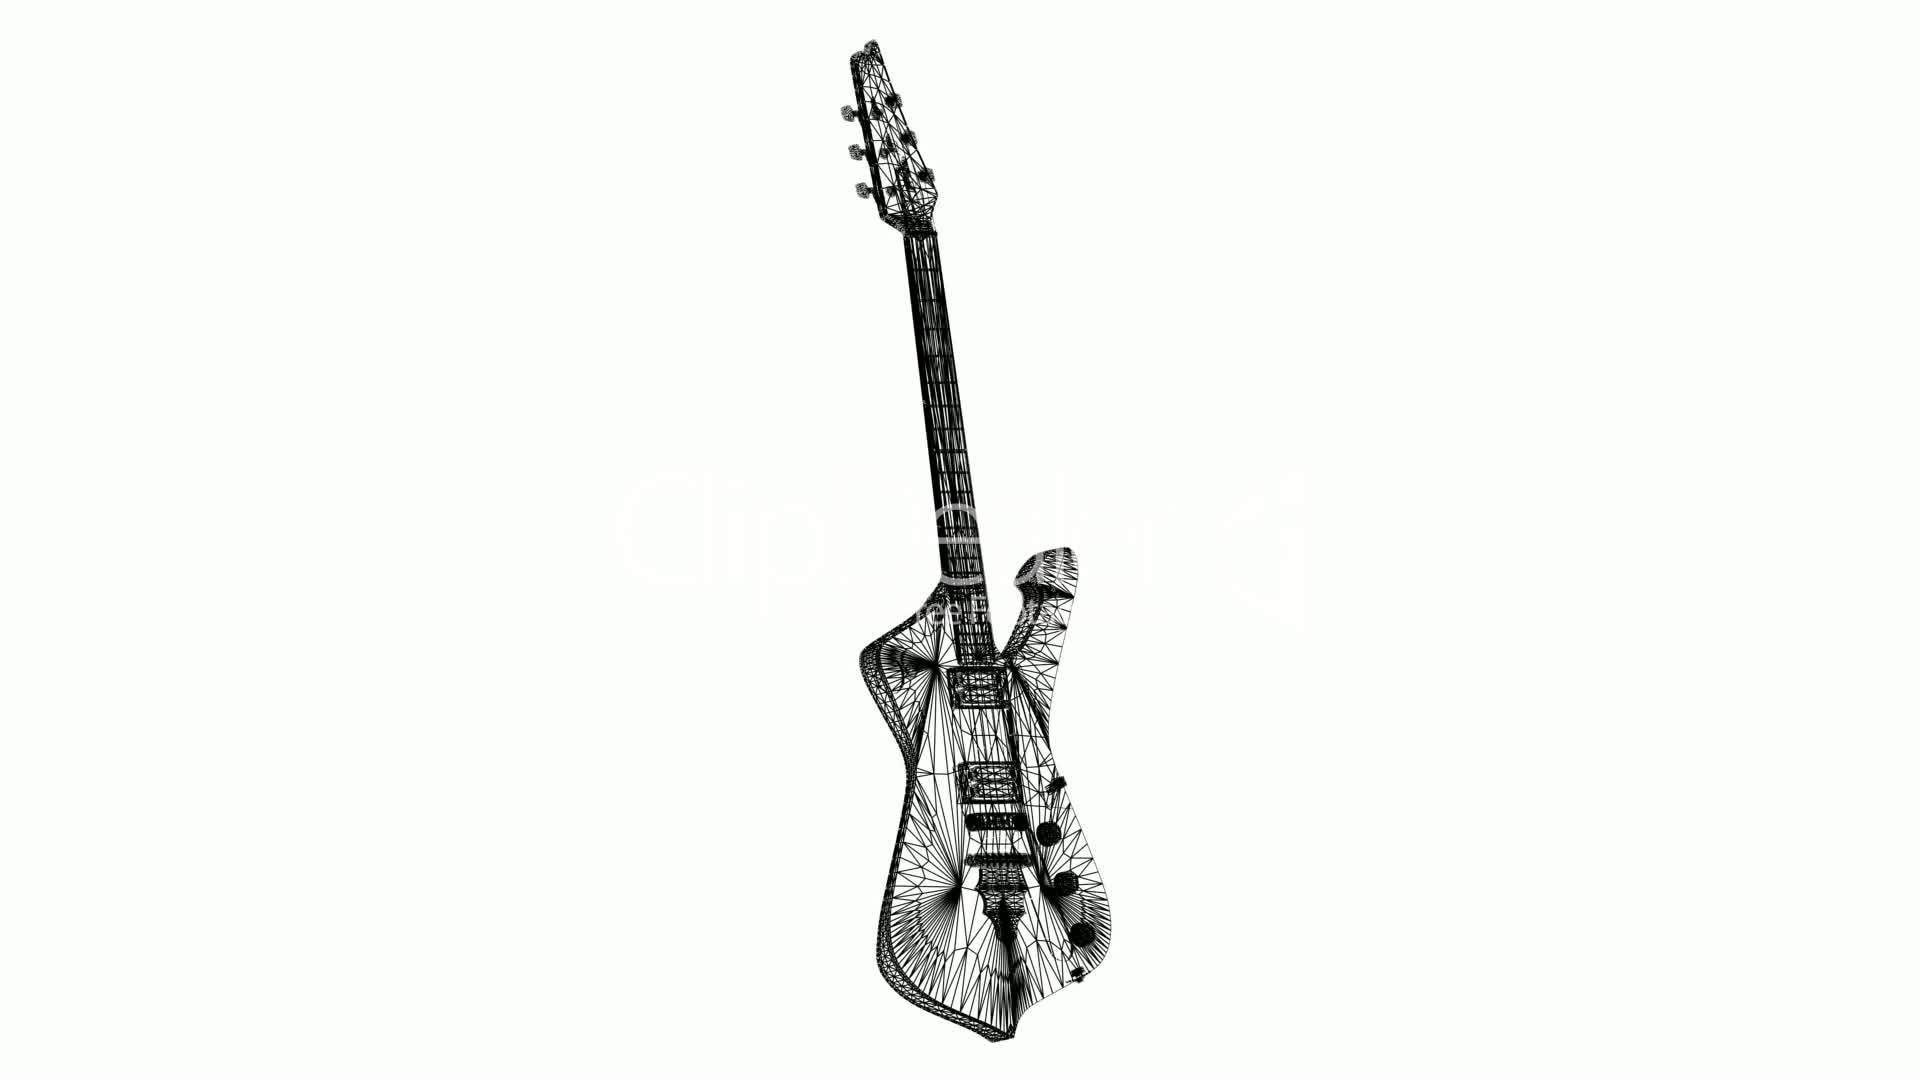 Rotation Of 3d Electric Guitar Sic Musical Instrument